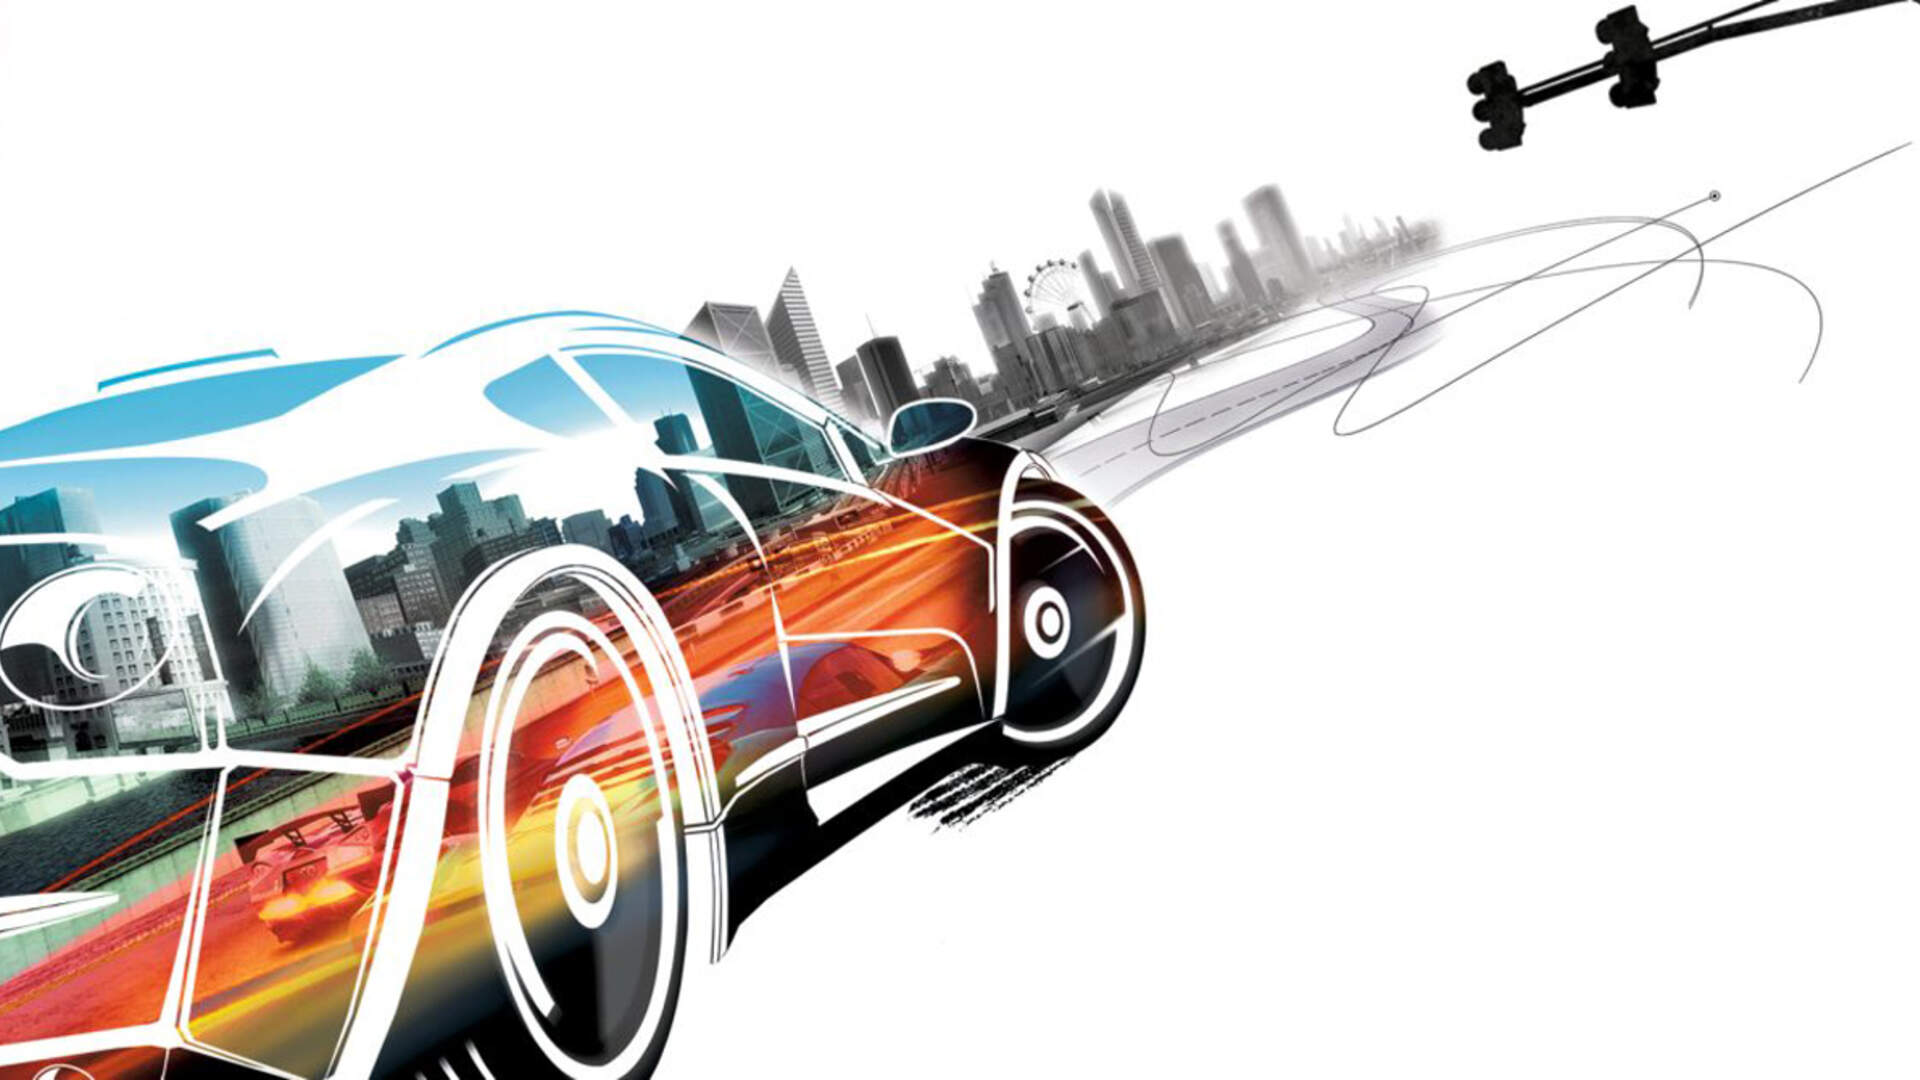 Burnout Paradise 10th Anniversary: Remembering Criterion's Race Towards the Future as it Heads to PS4 and Xbox One